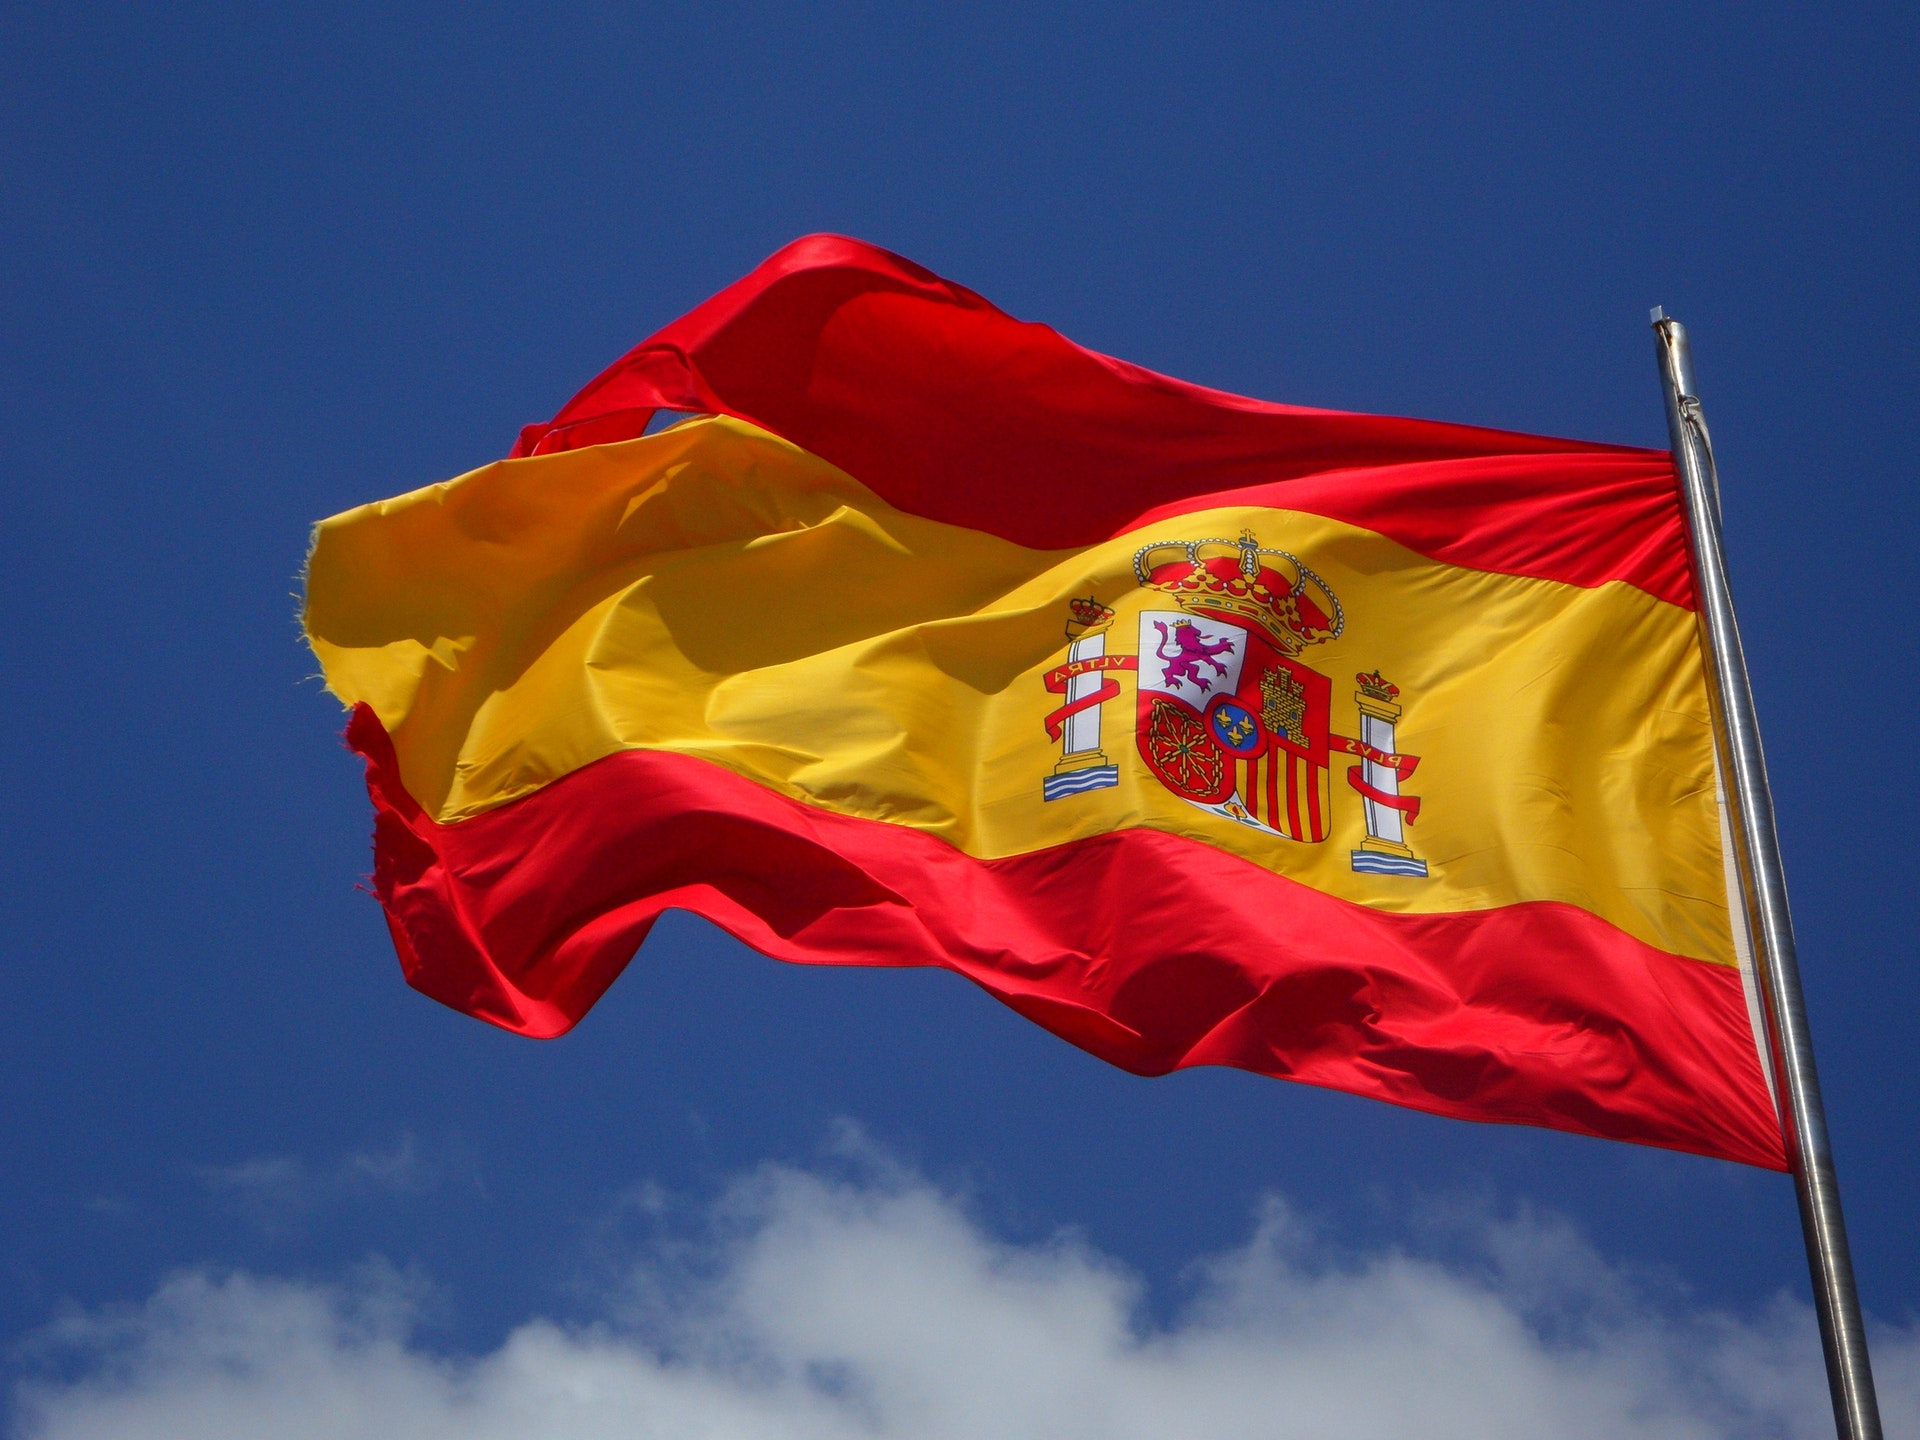 Happy National Day Spain!